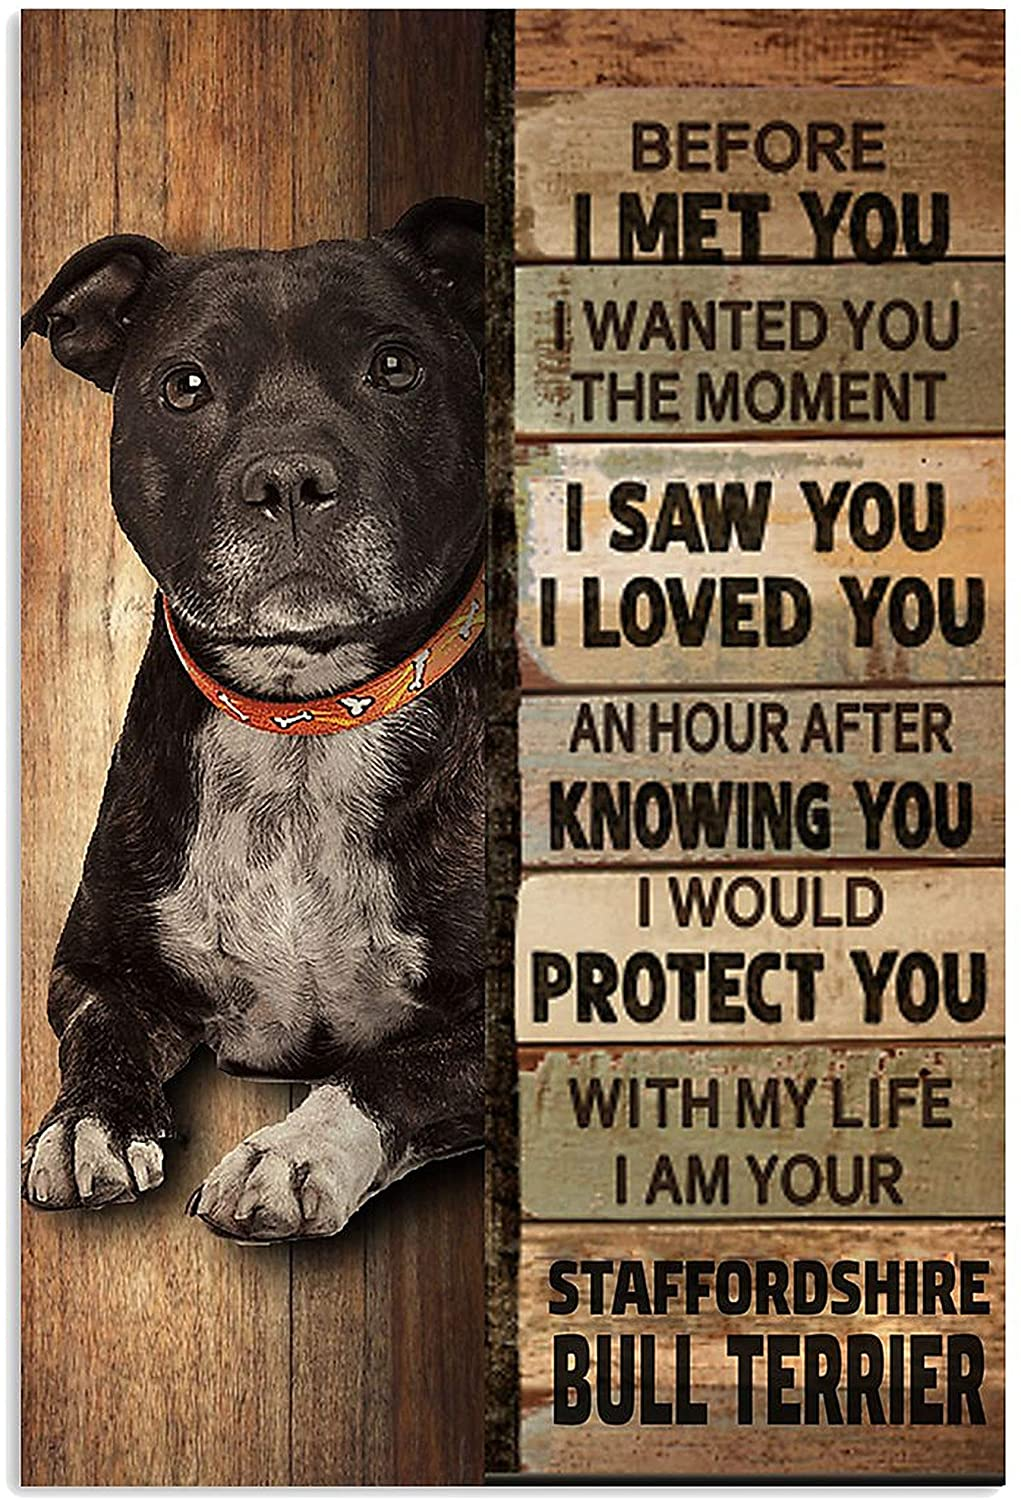 Staffordshire Bull Terrier Dog Before I met you I wanted you the moment I saw you I love you poster